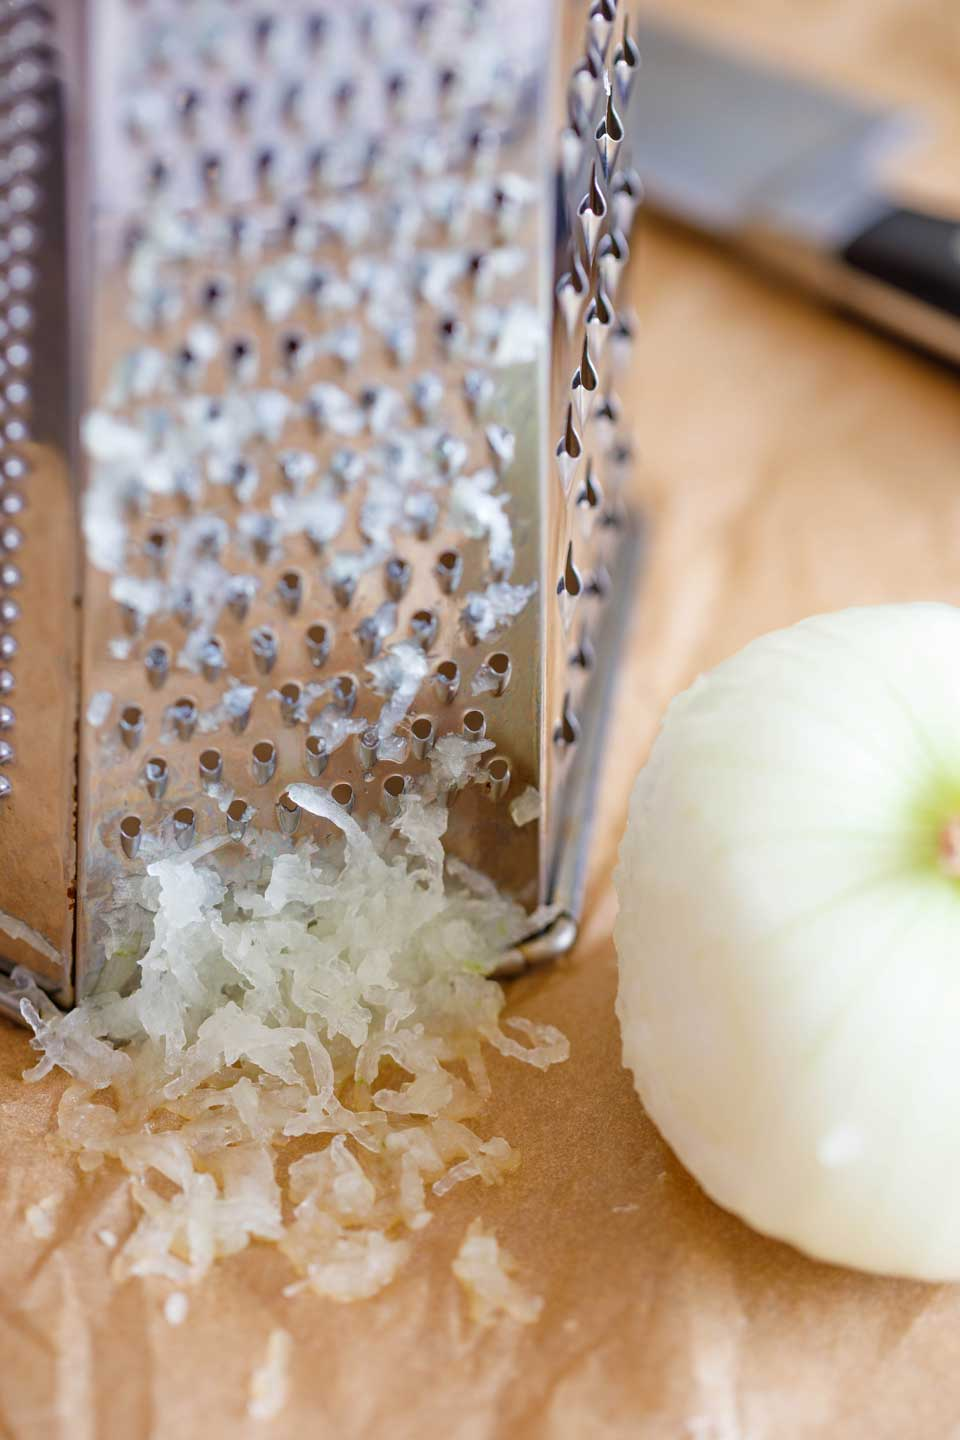 Box grater with onion